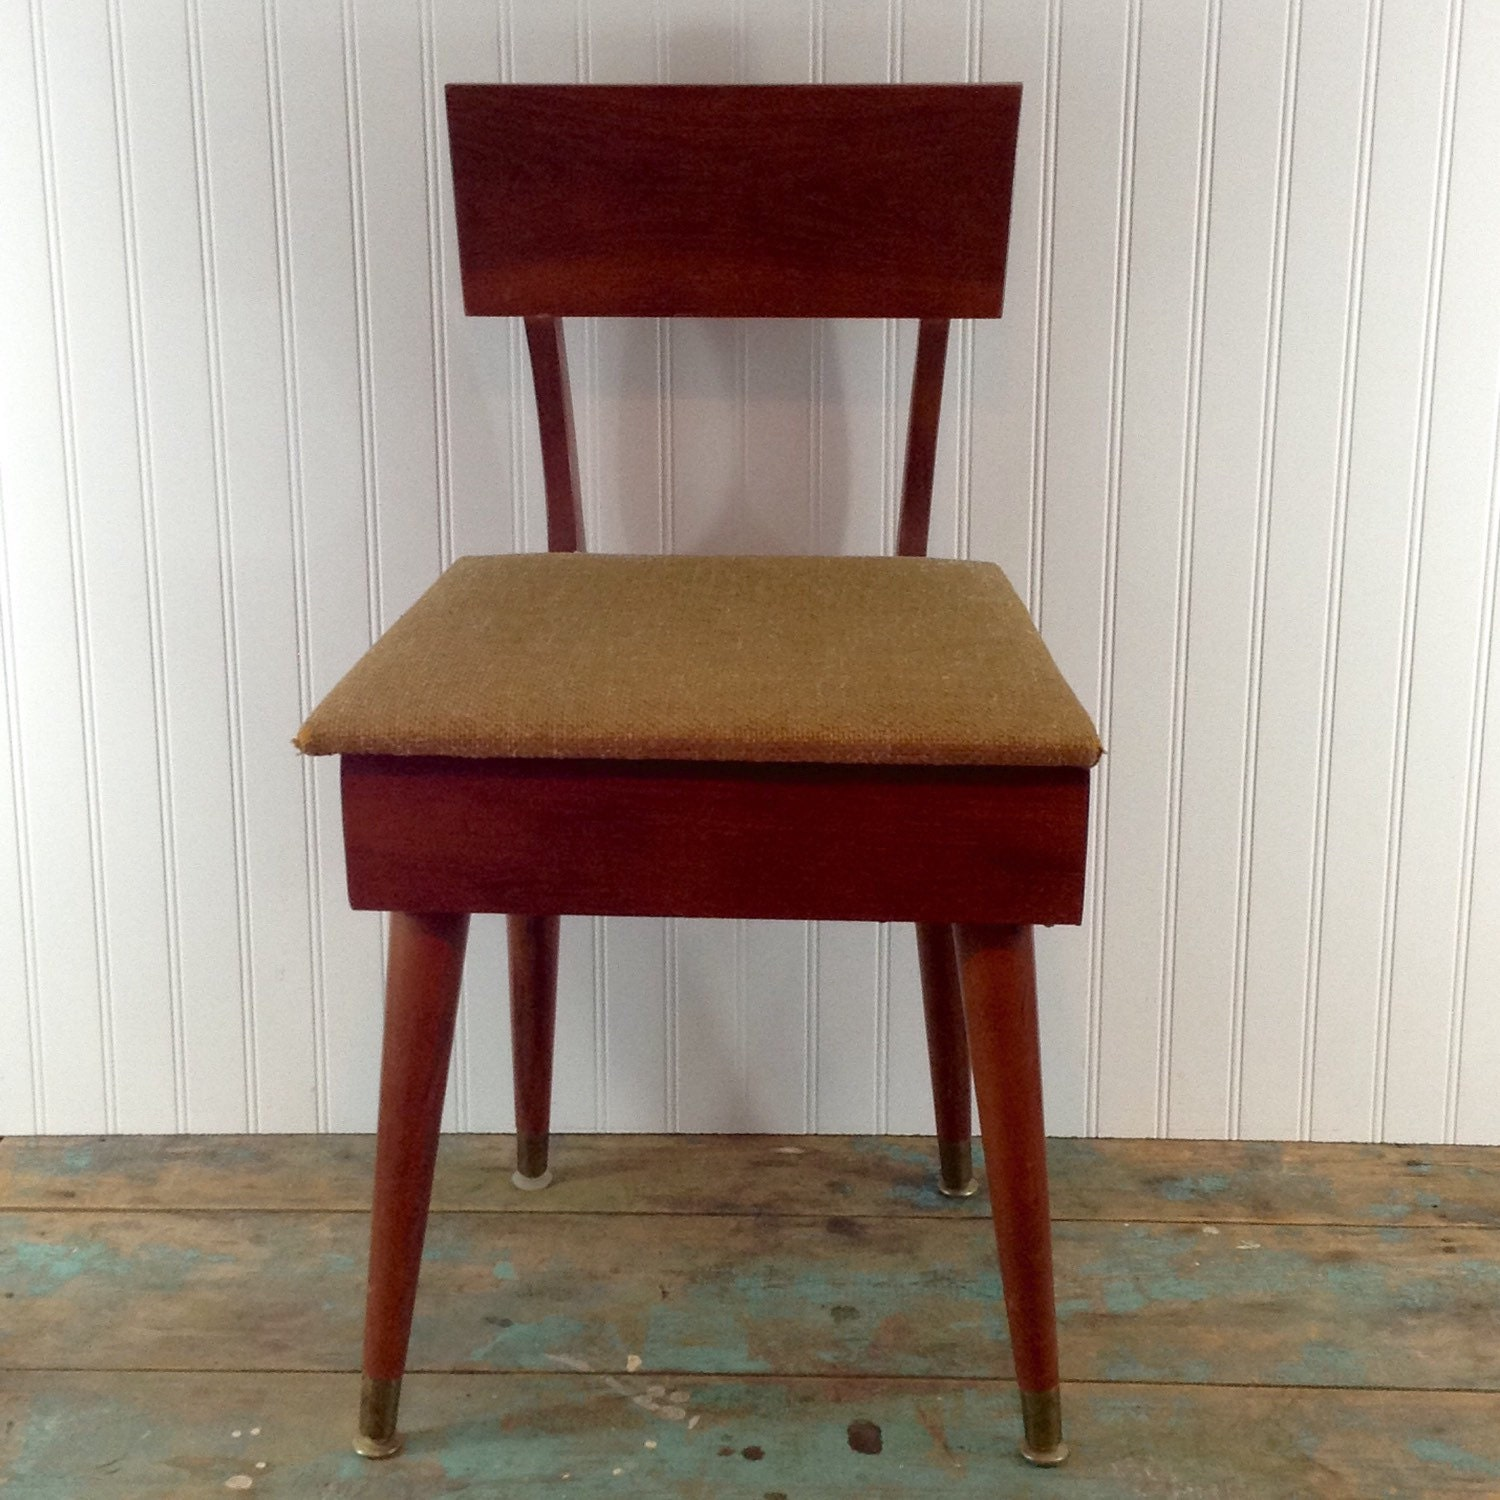 ... vintage sewing chair with seat storage price reflects ... - Antique Sewing Chair - 28 Images - Antique Sewing Chair Ebay